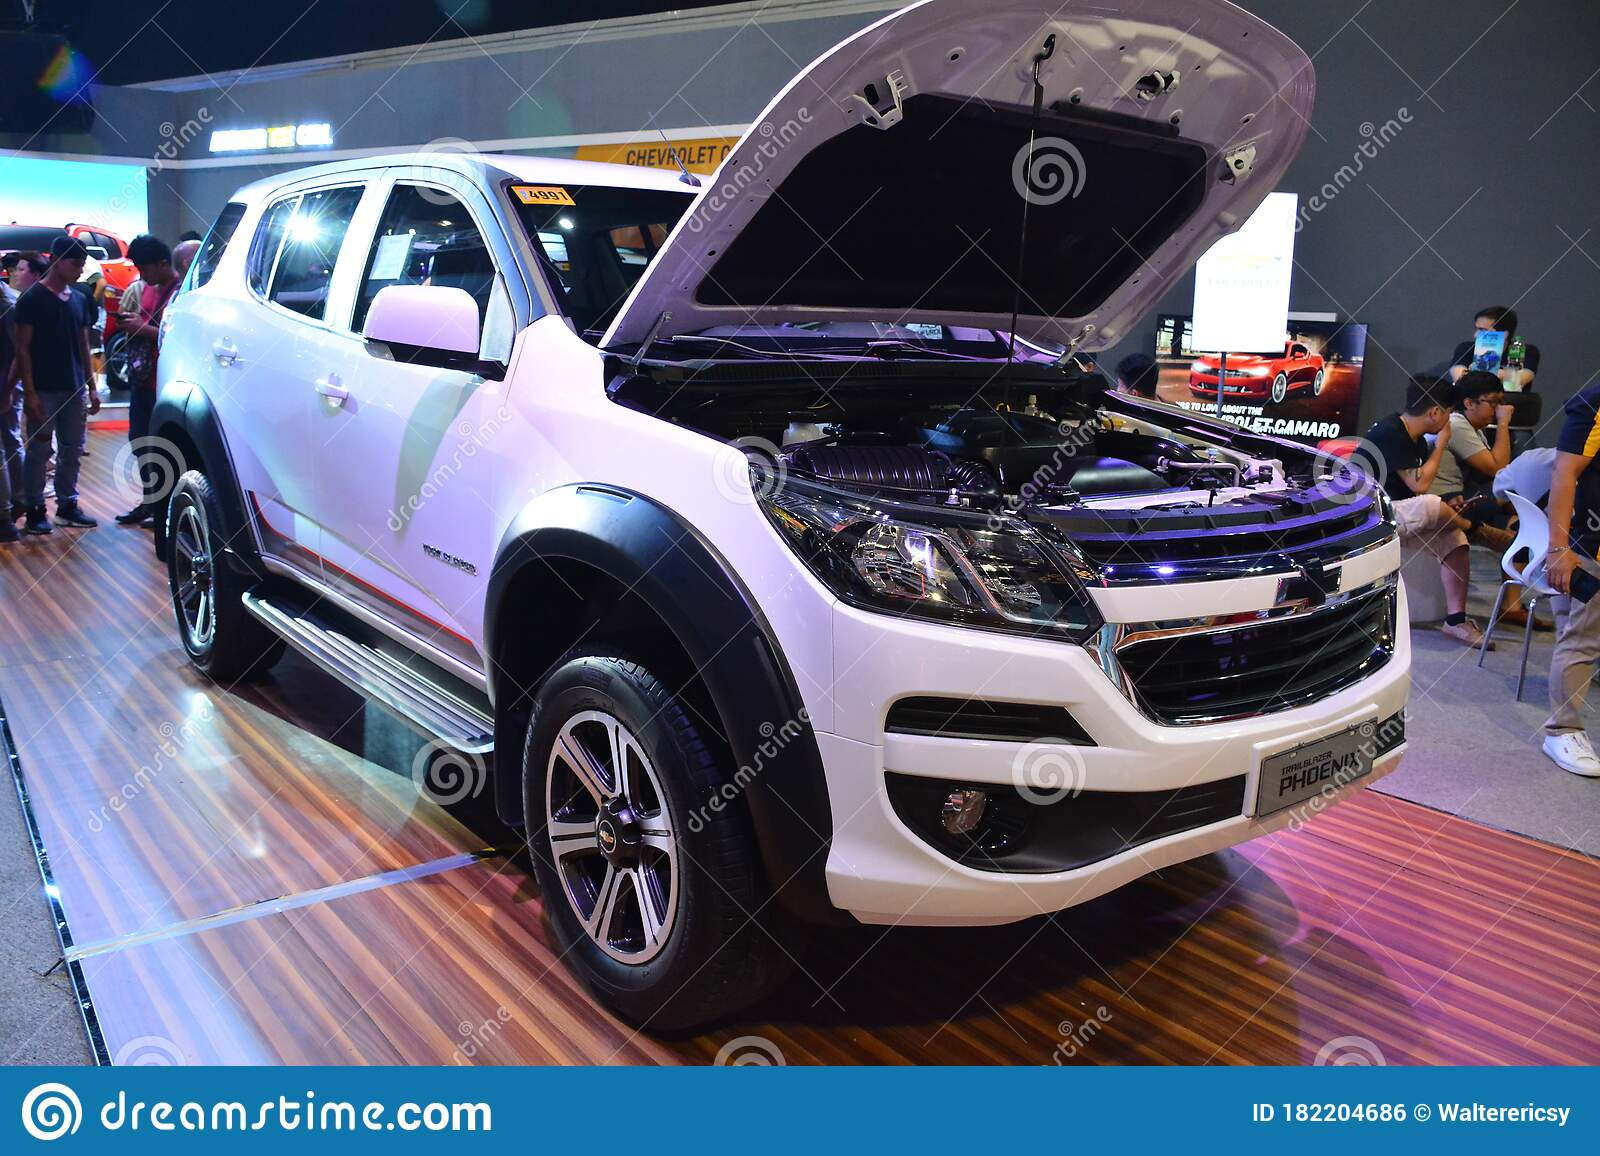 Chevrolet Trailblazer Phoenix Suv At Manila International Auto Show In Pasay Philippines Editorial Photo Image Of Mias International 182204686